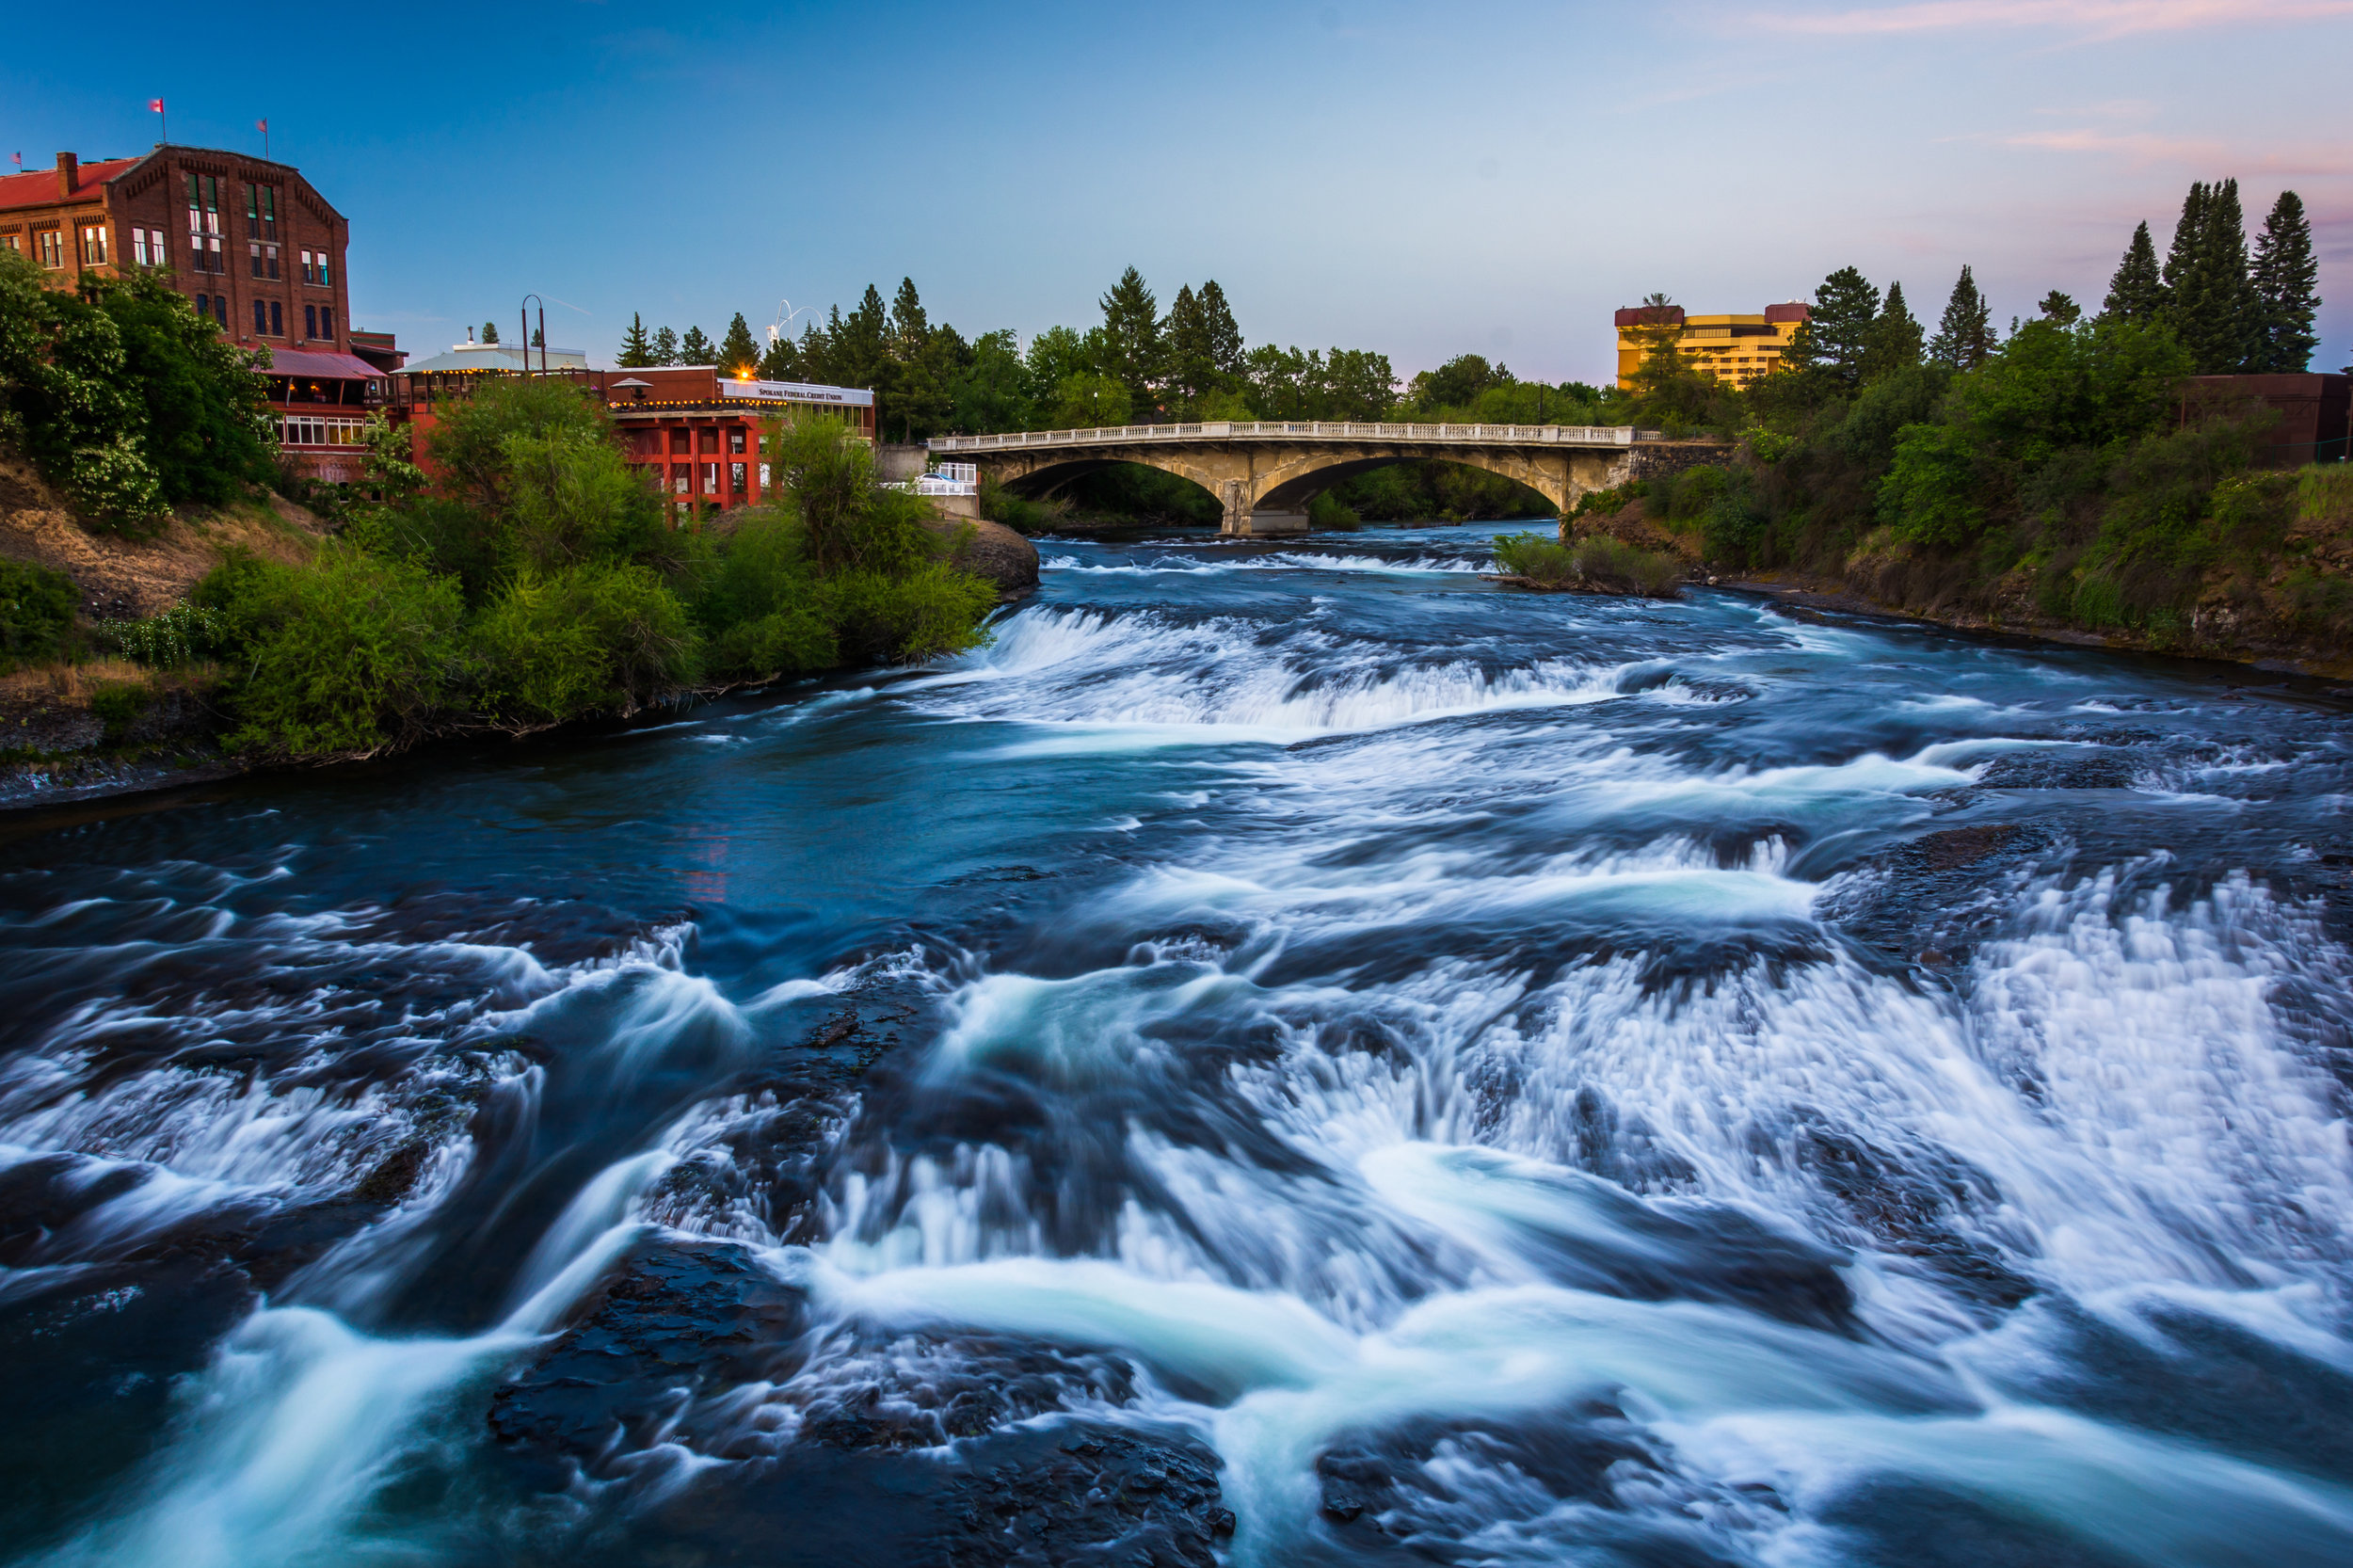 Rivers & watersheds -